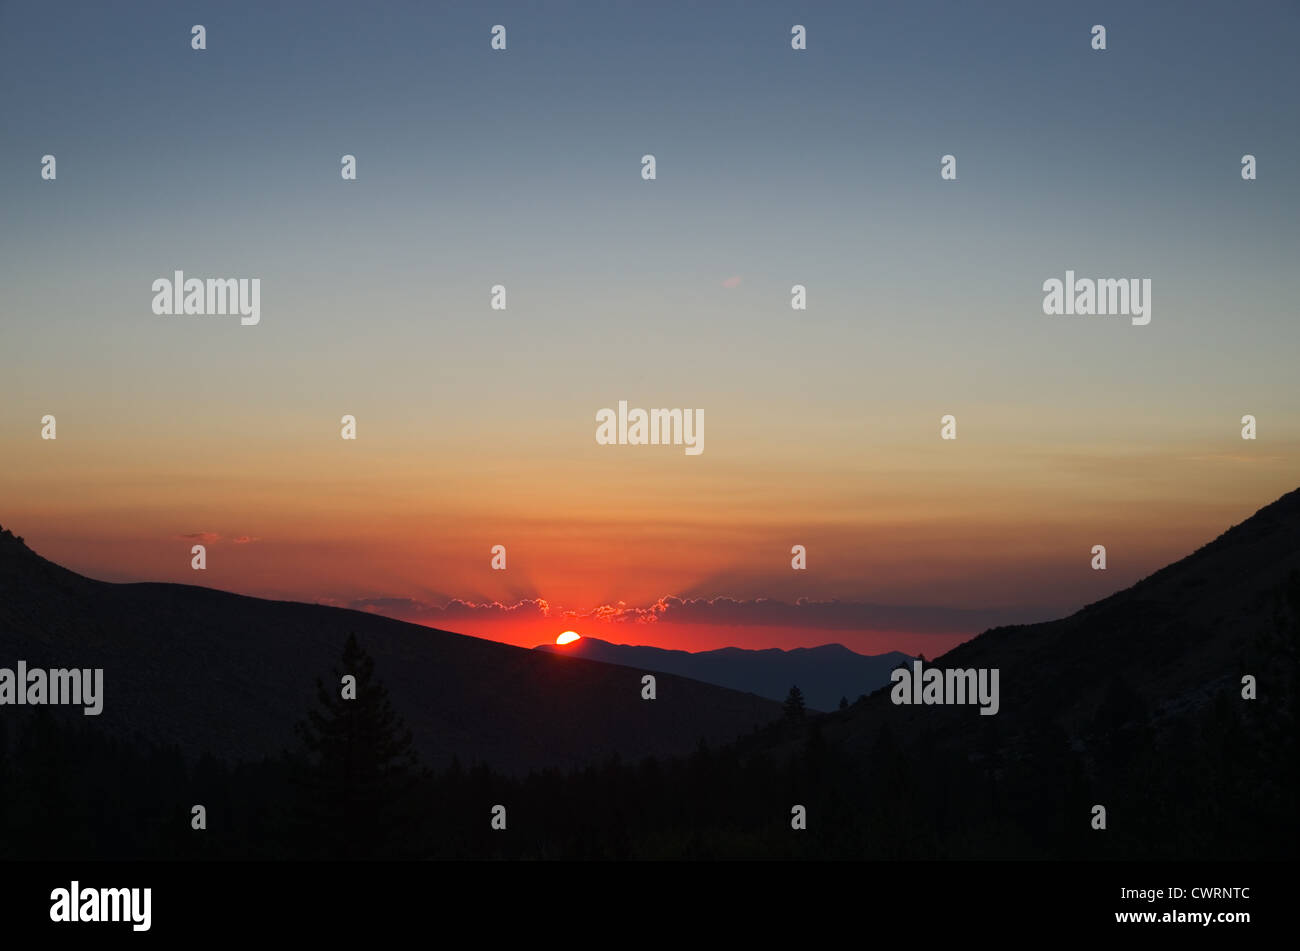 mountain sunrise with brightly edged clouds and copy space - Stock Image